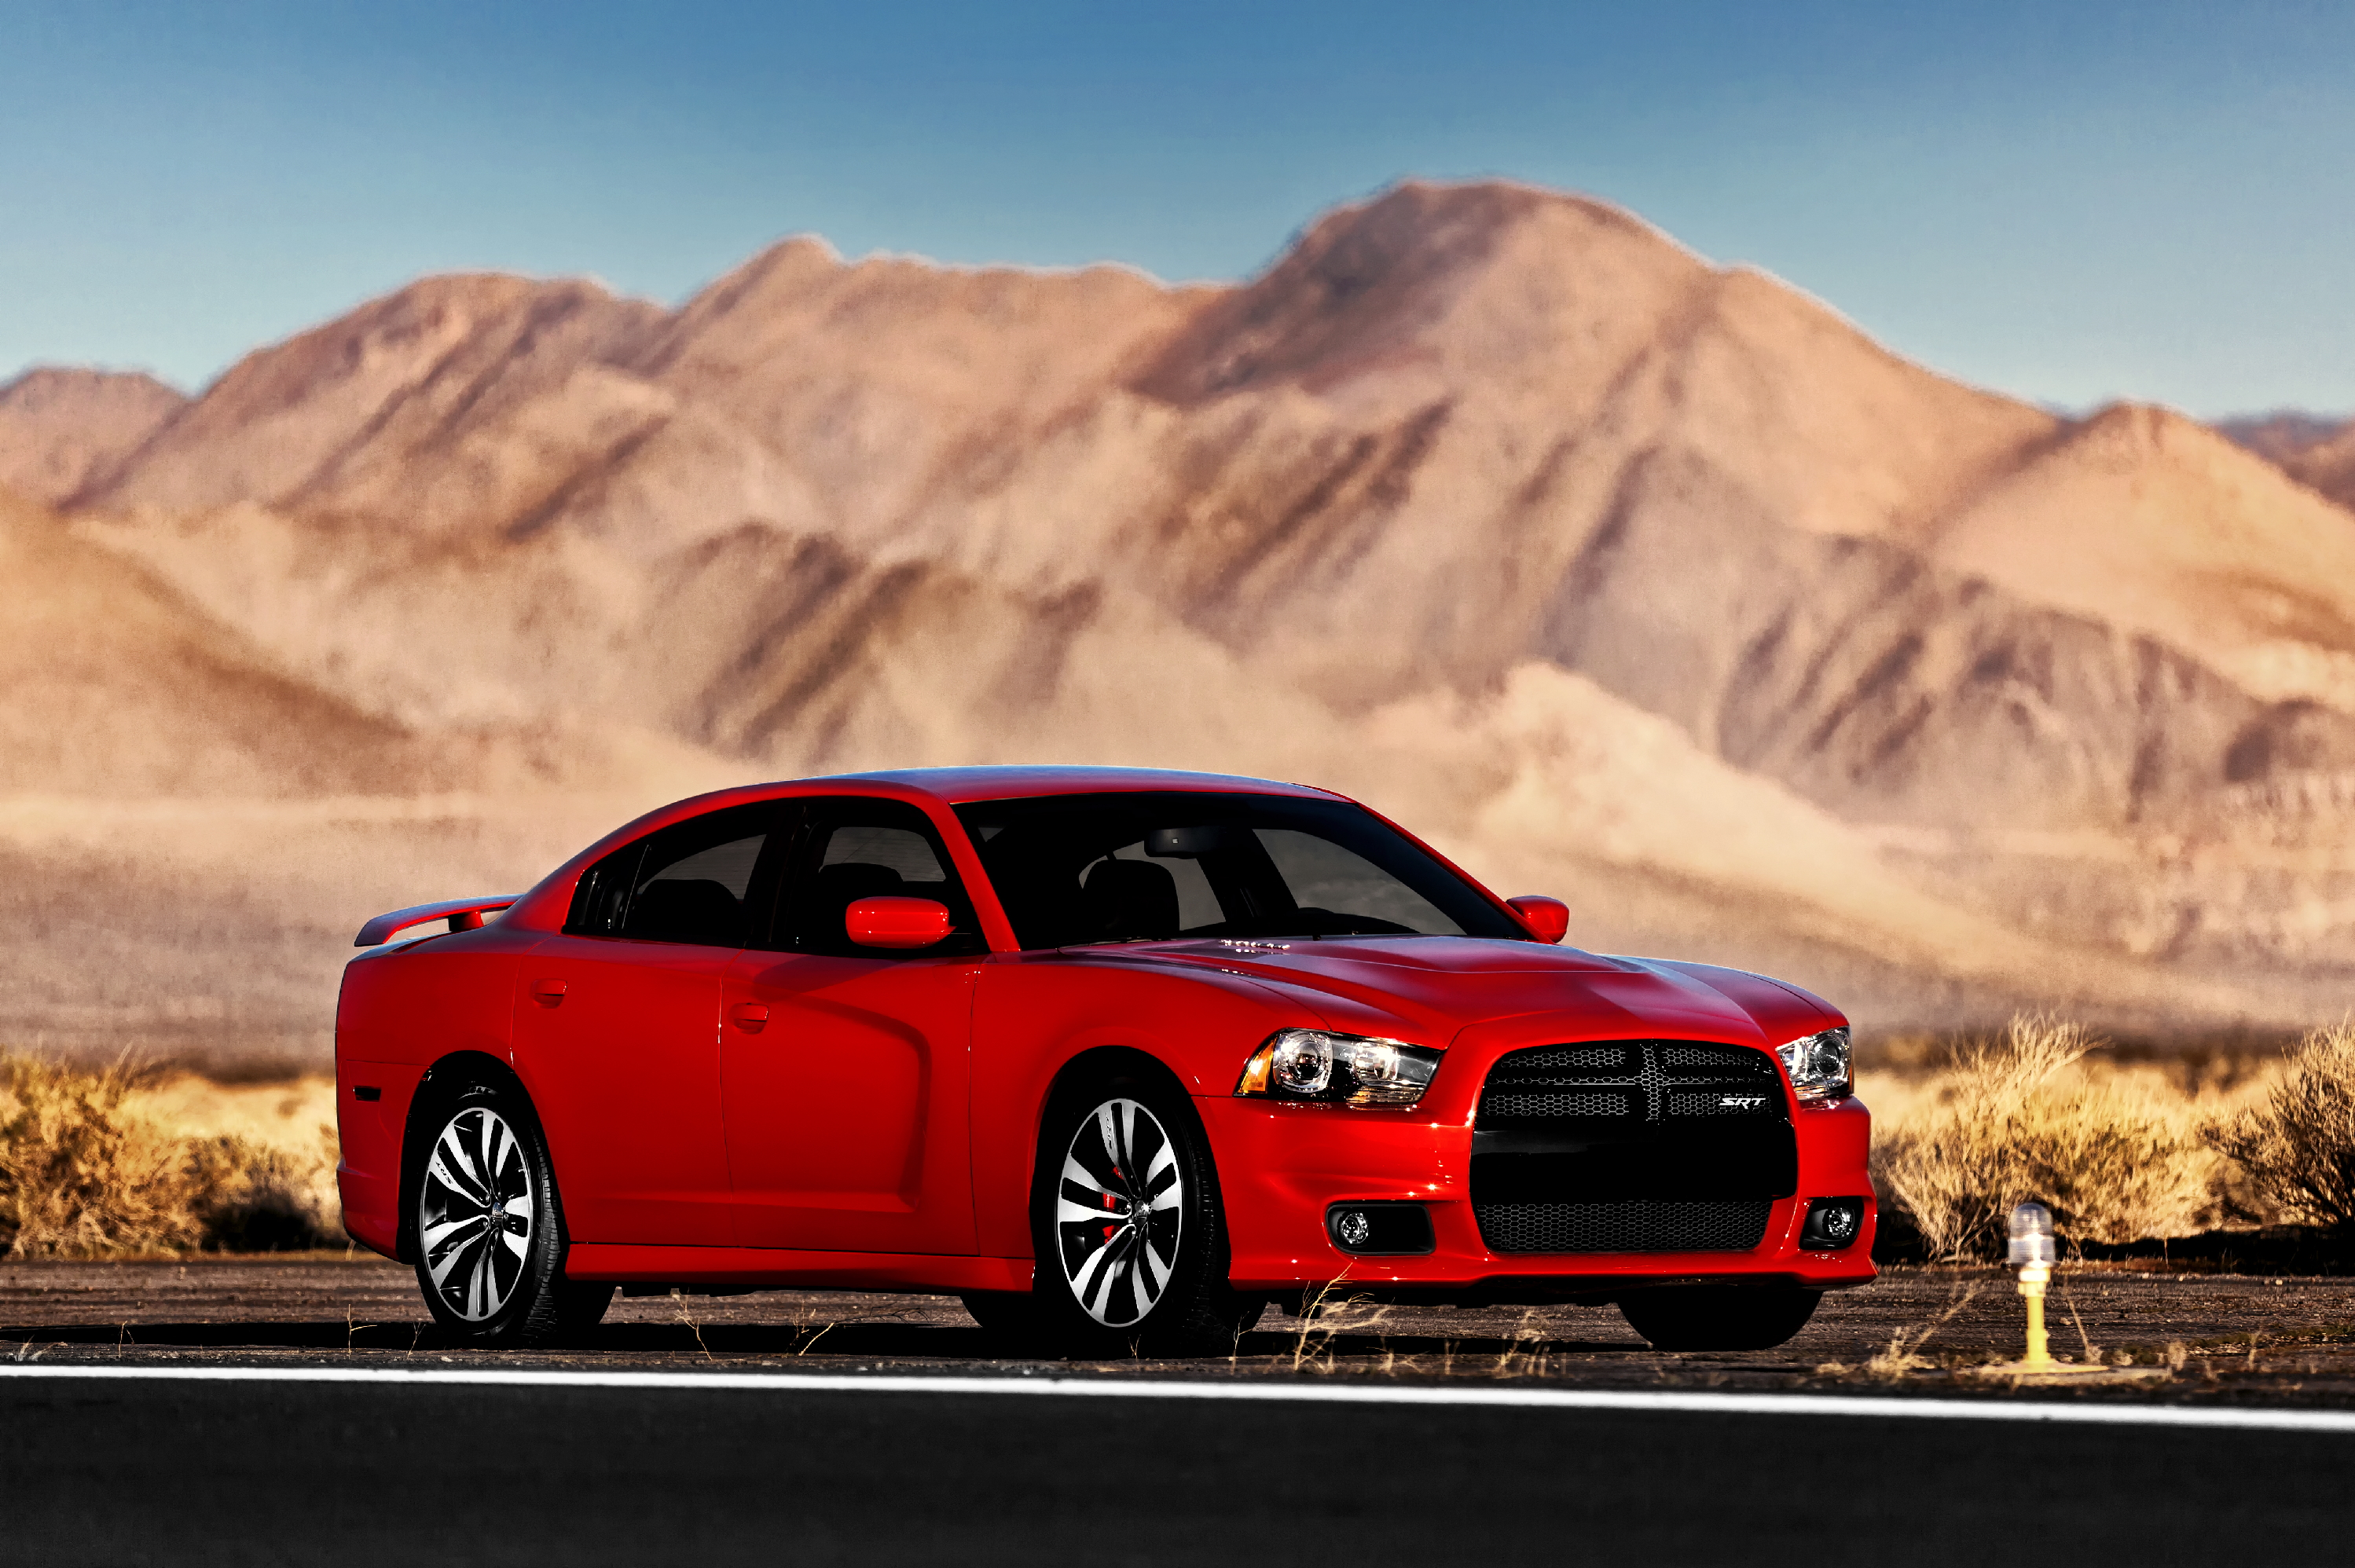 2012 Dodge Charger Srt8 Motor City Muscle Cars